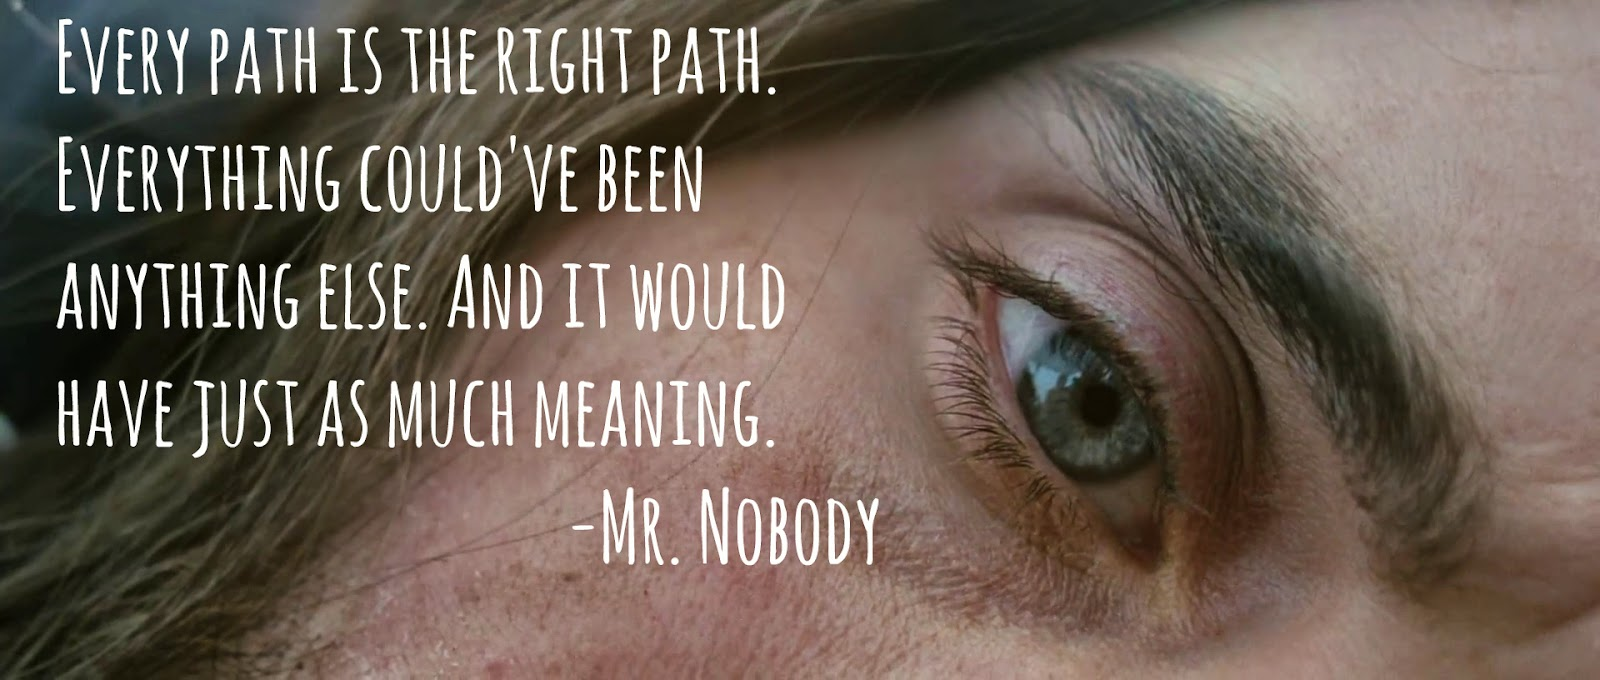 Mr. Nobody - Every path is the right path.  Everything could've been anything else.  And it would have just as much meaning.